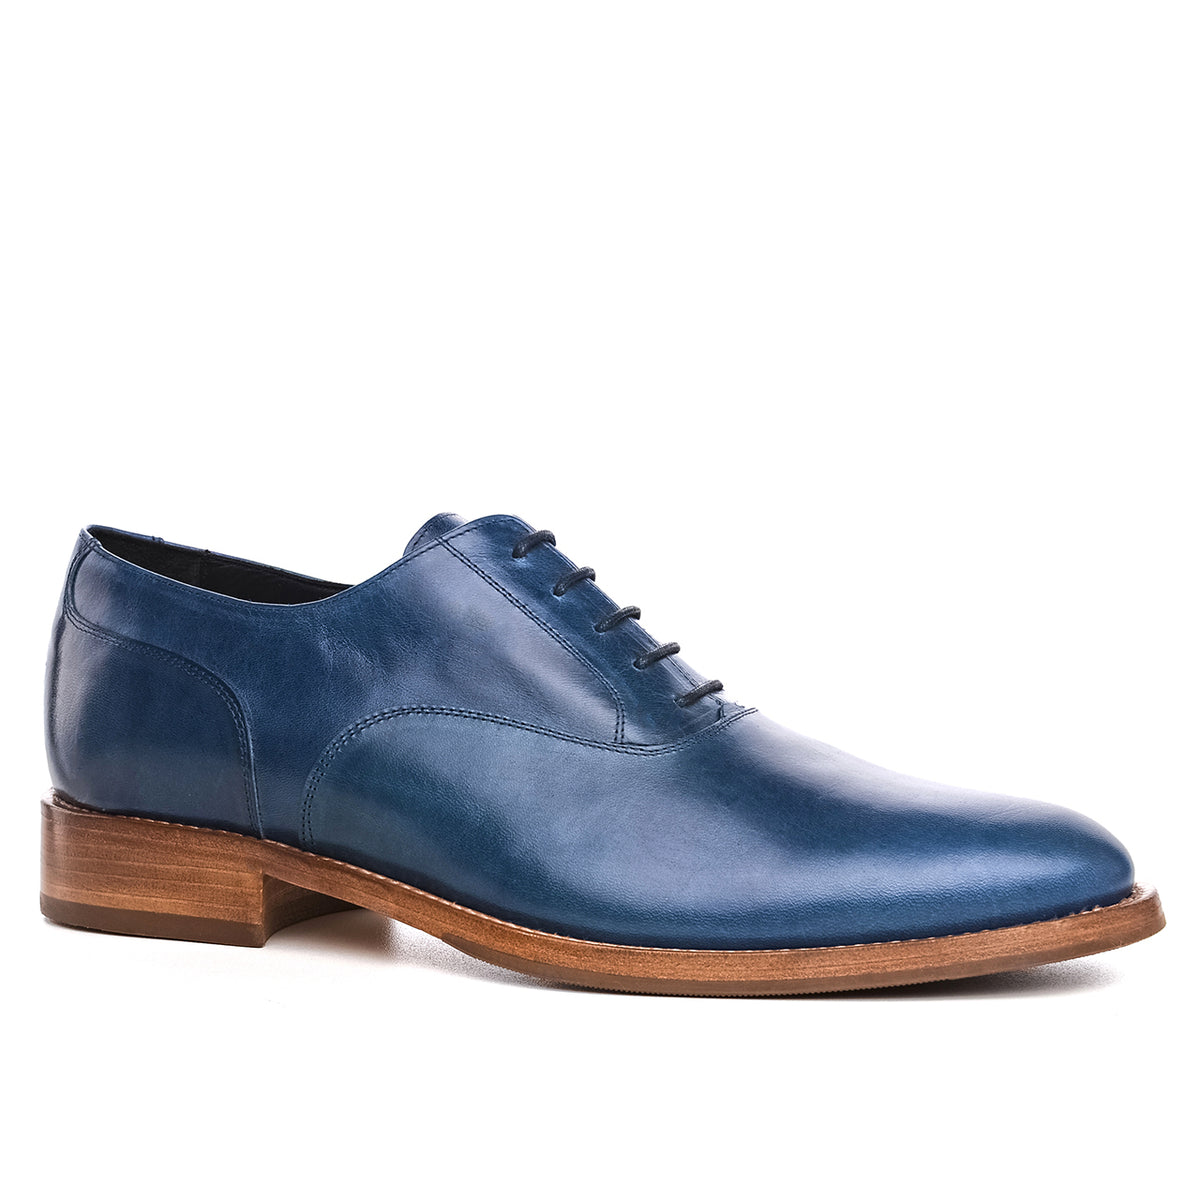 8268ba88a6c Height Increasing Blue Leather Ocean Oxfords – Costoso Italiano